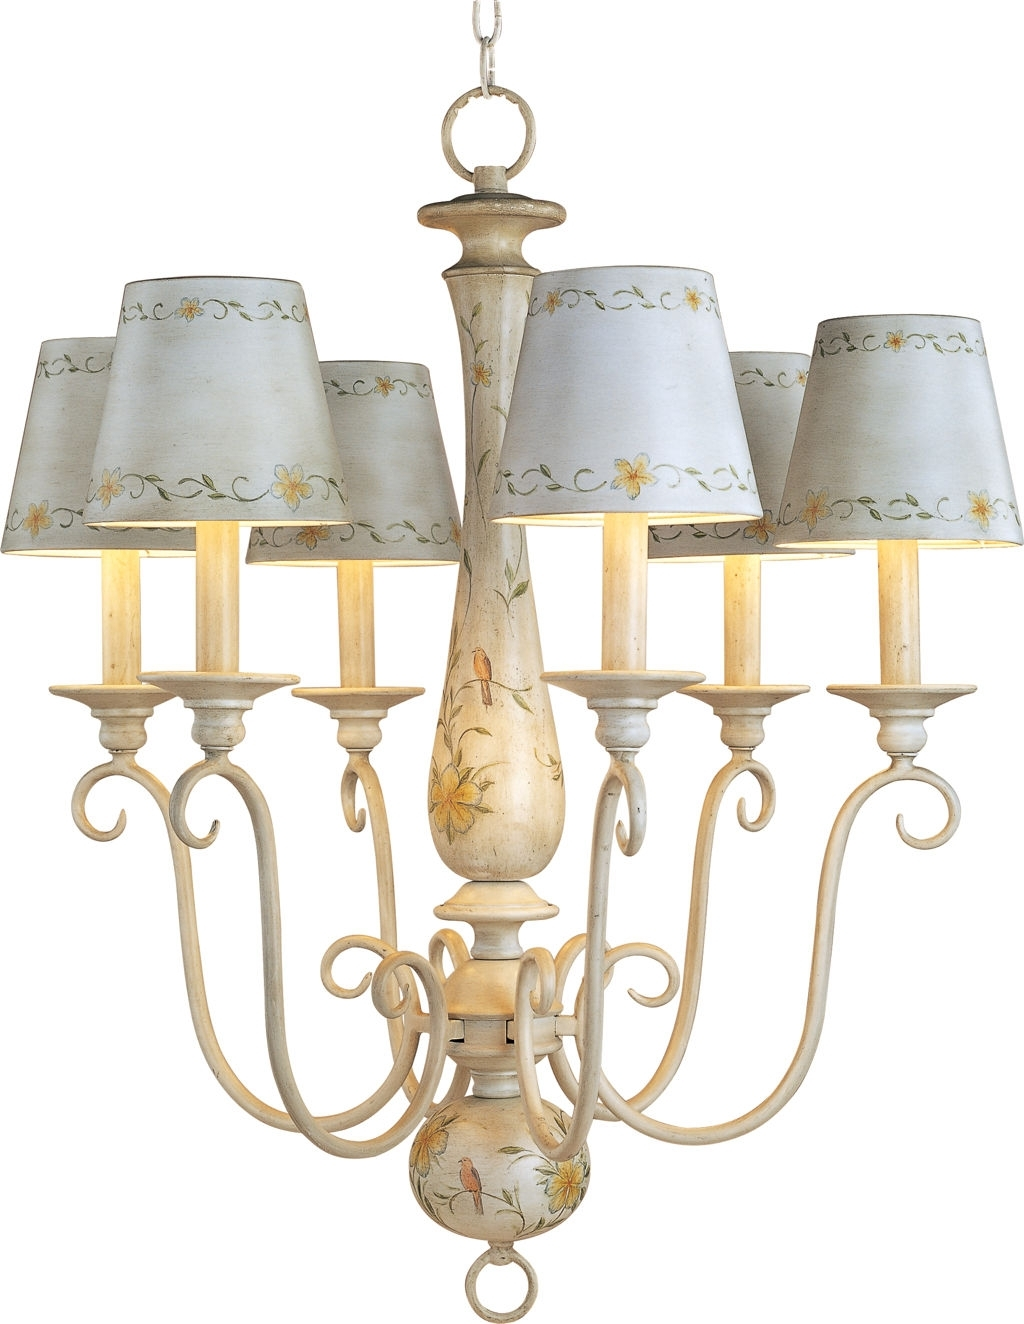 Popular Chandeliers With Lamp Shades Regarding Antique French Country Mini Chandelier With Ceramic Lamp Shades And (View 12 of 15)